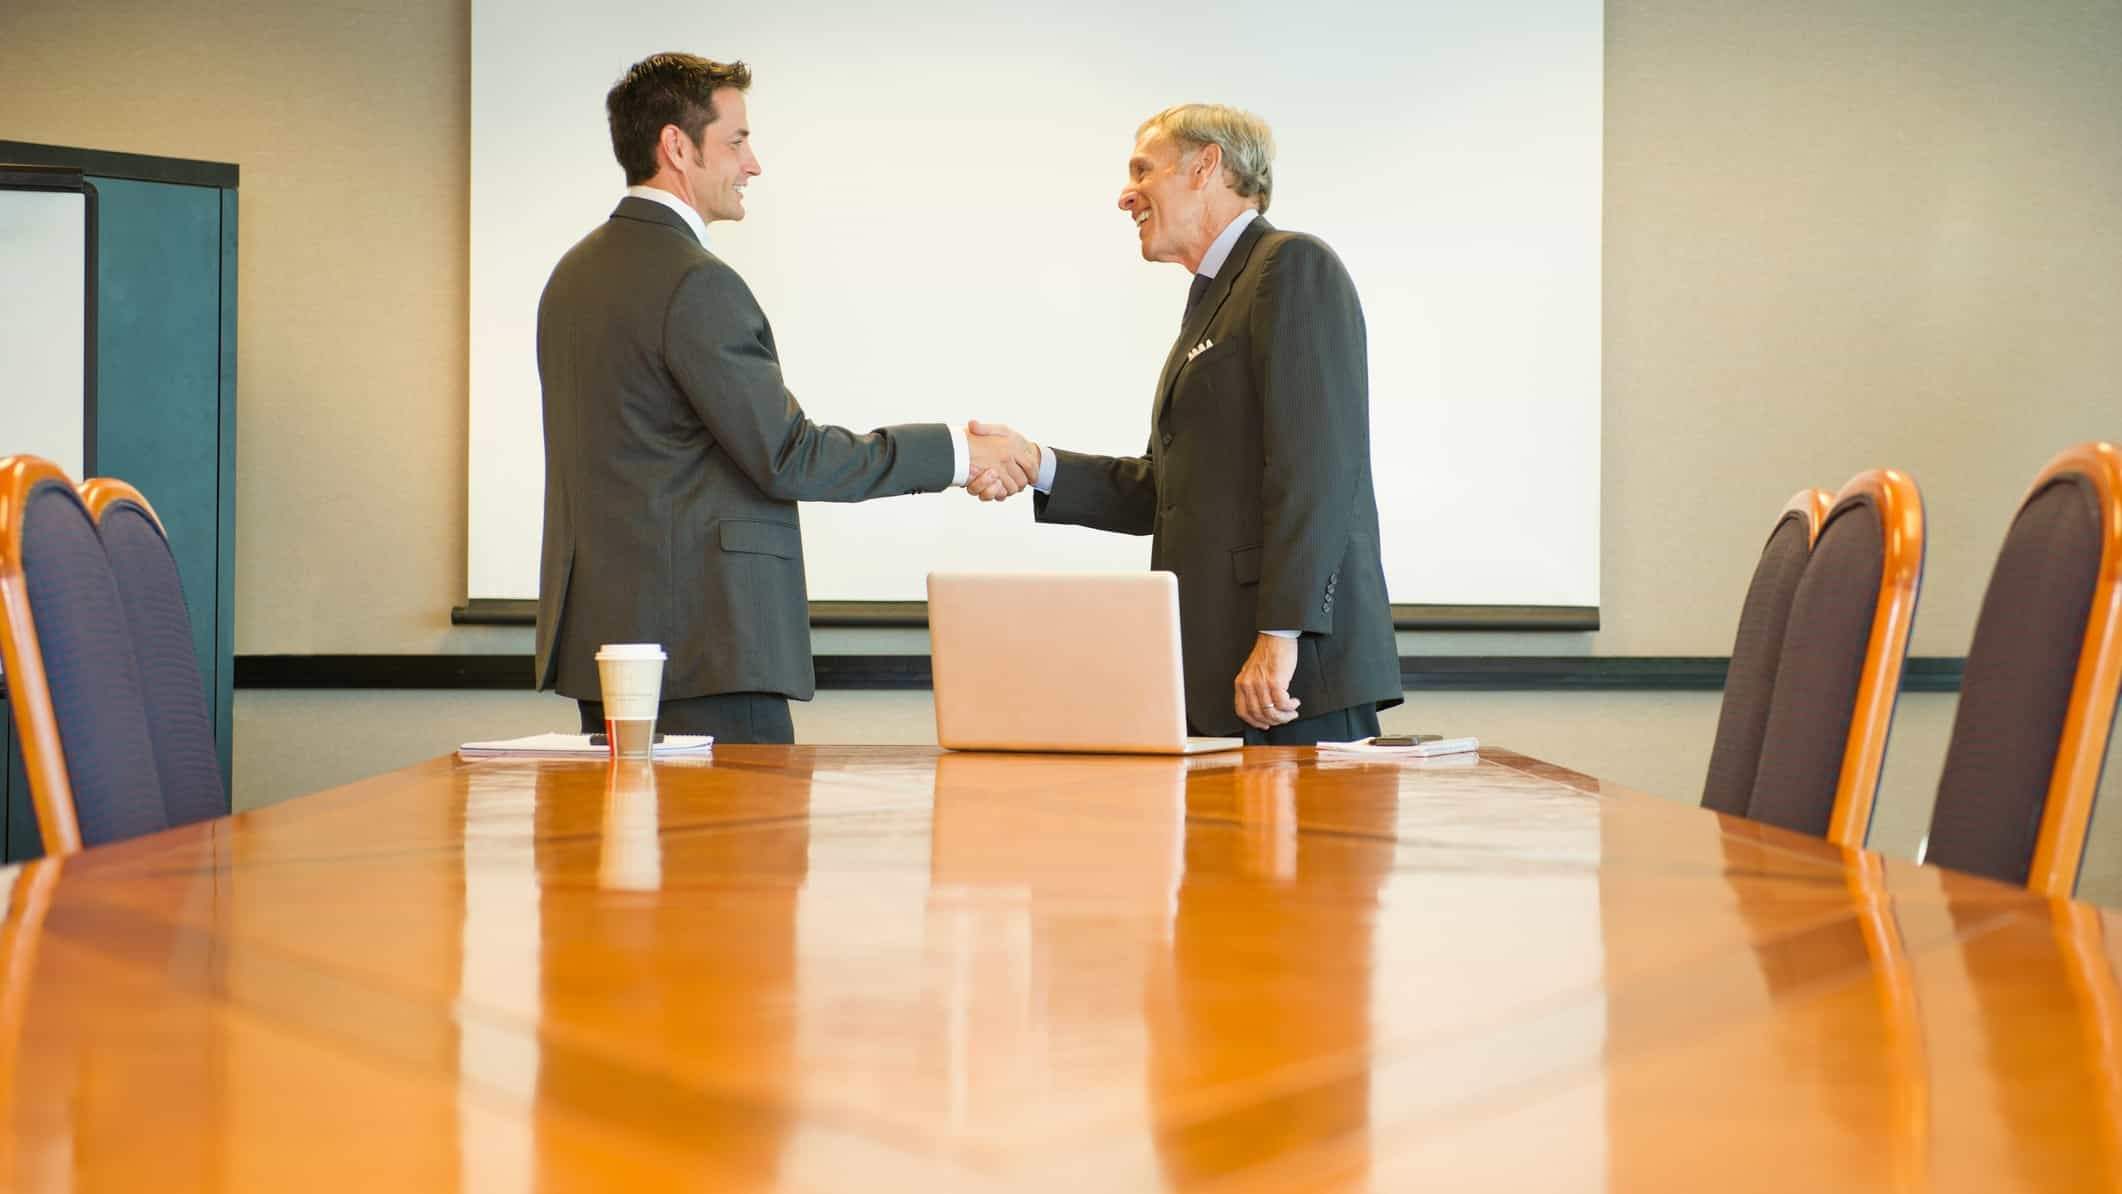 two men in suits shake hands at the top of a shined wood boardroom table.